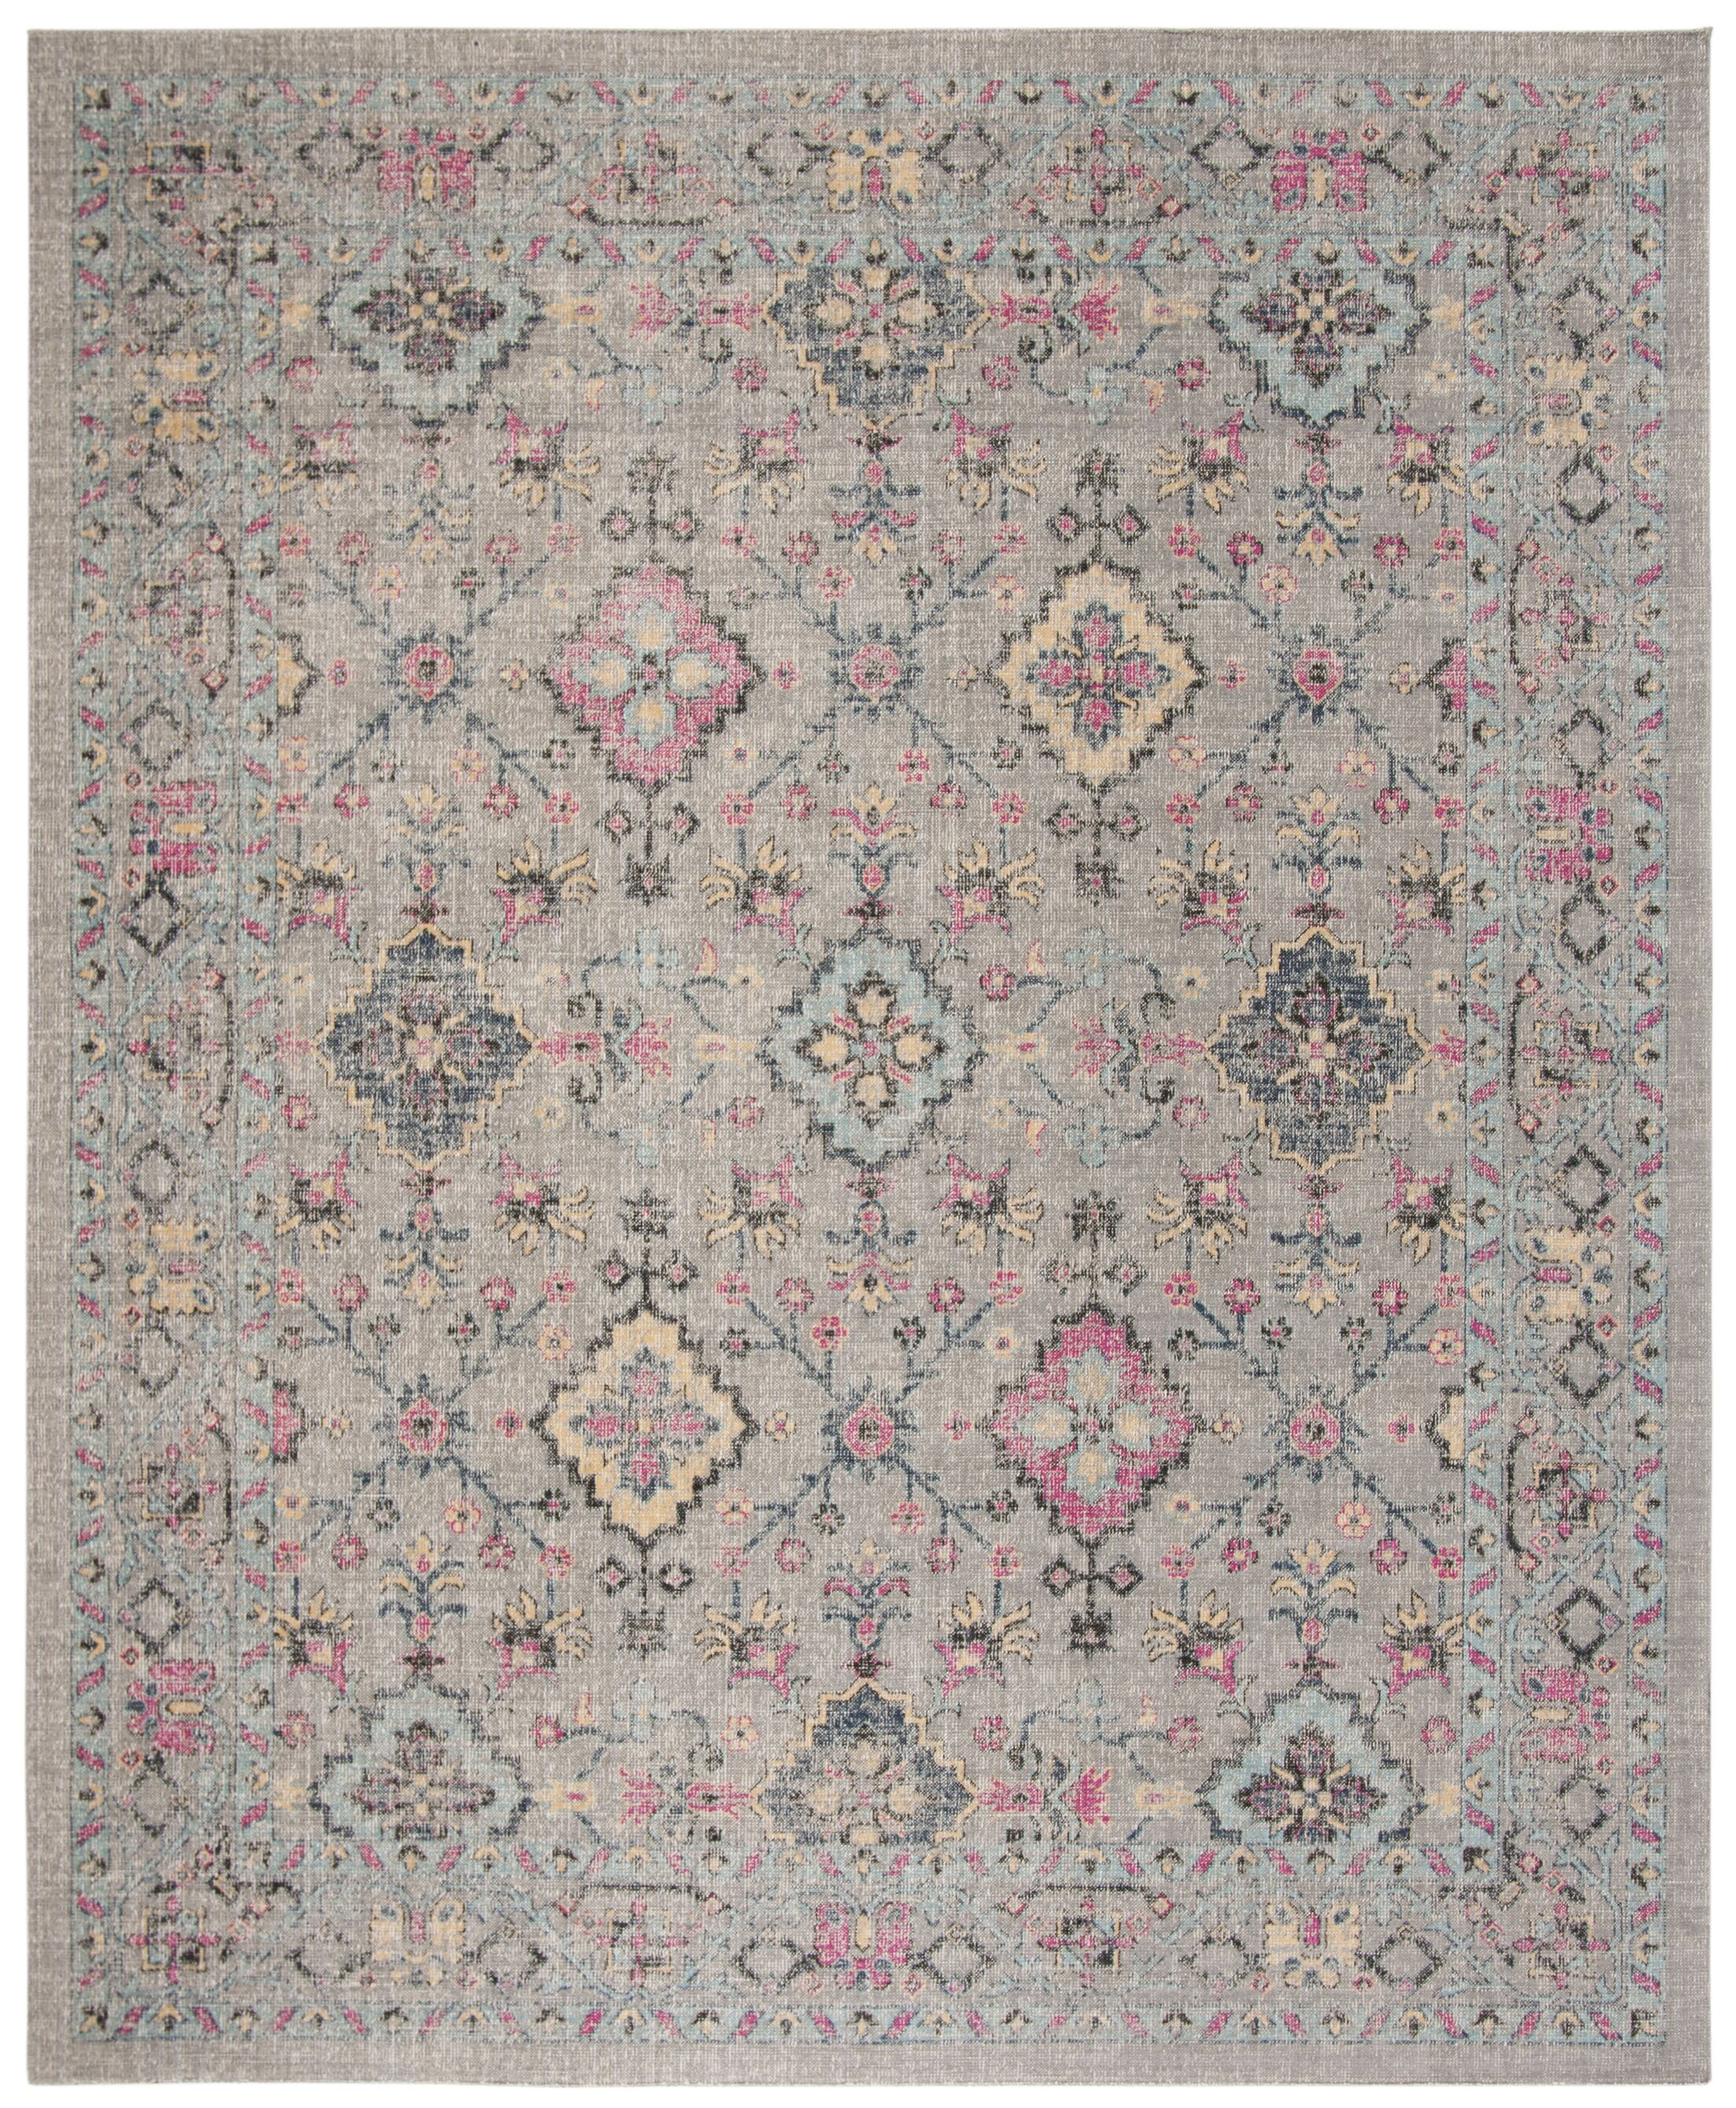 Bunn Gray/Blue Area Rug Rug Size: Rectangle 8' x 10'